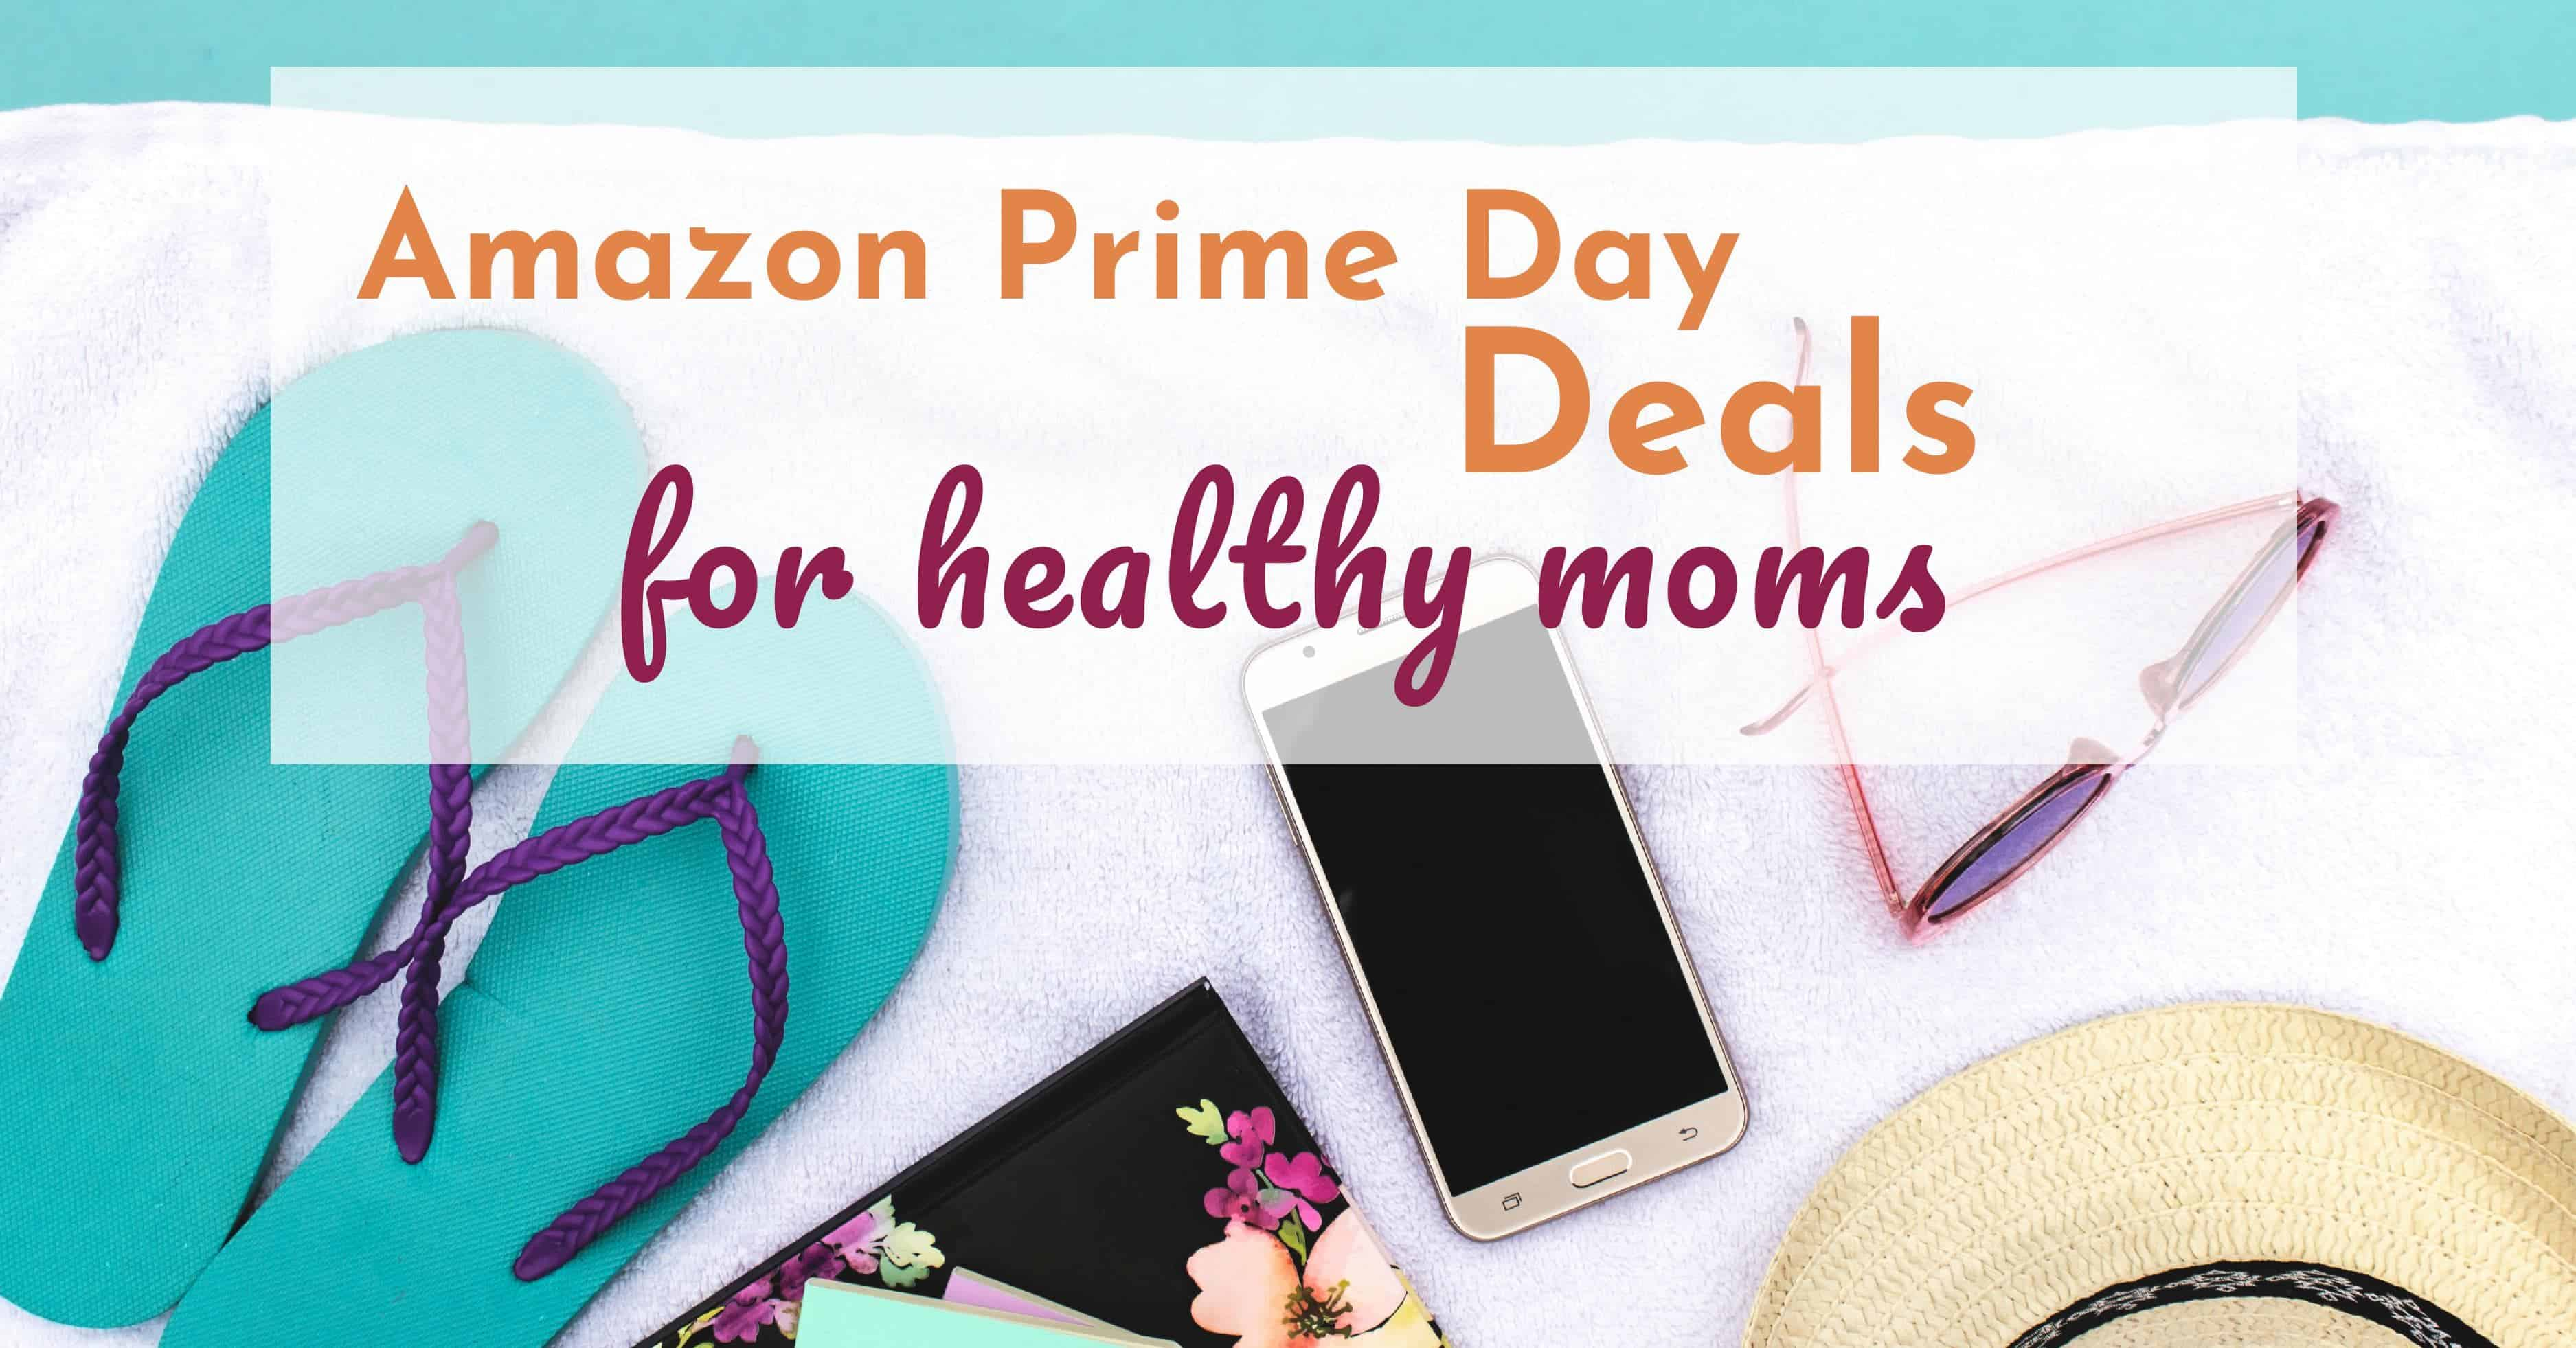 Amazon Prime Day Deals for Healthy Moms • Lunch with Leah